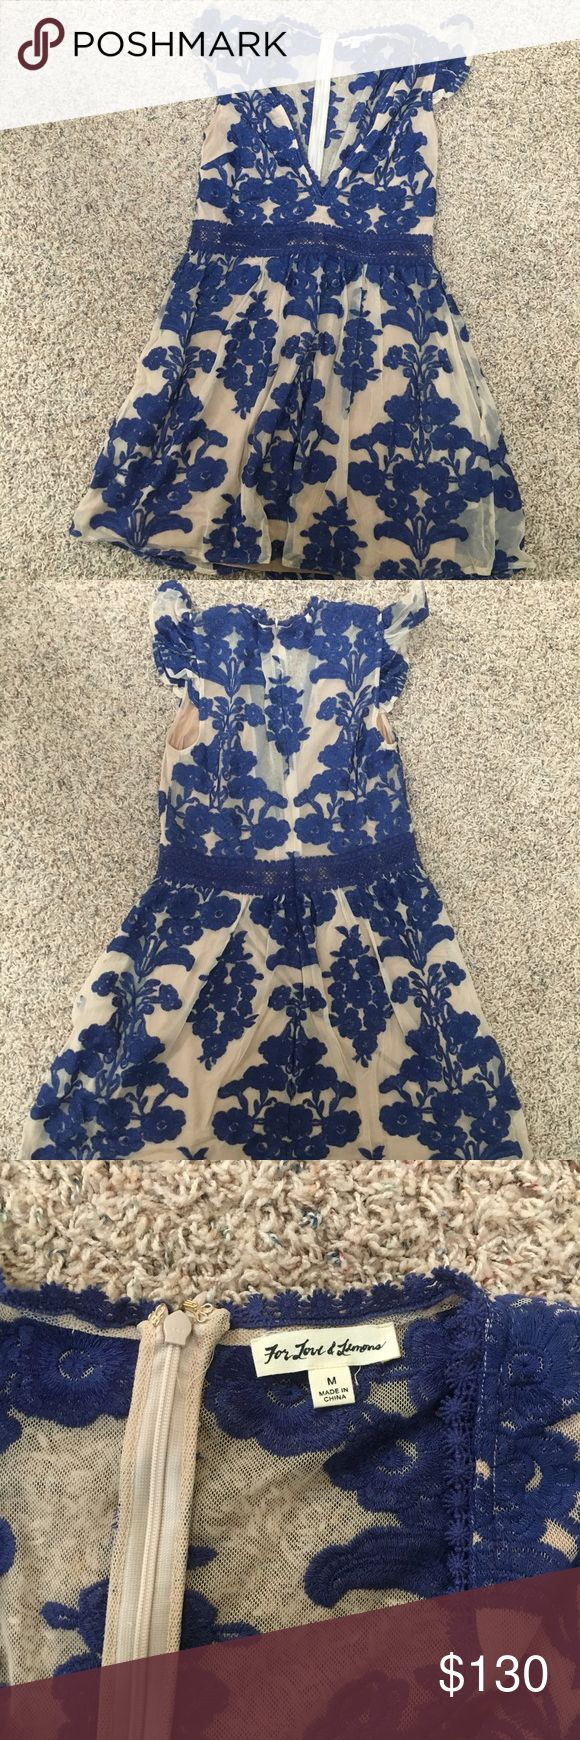 For Love and Lemons Dress This mid-thigh, v-neck dress is in a royal blue/cream color, size medium, and even has discreet pockets! Was originally $200, only worn once, and is great for a school dance or a night out! For Love And Lemons Dresses Mini